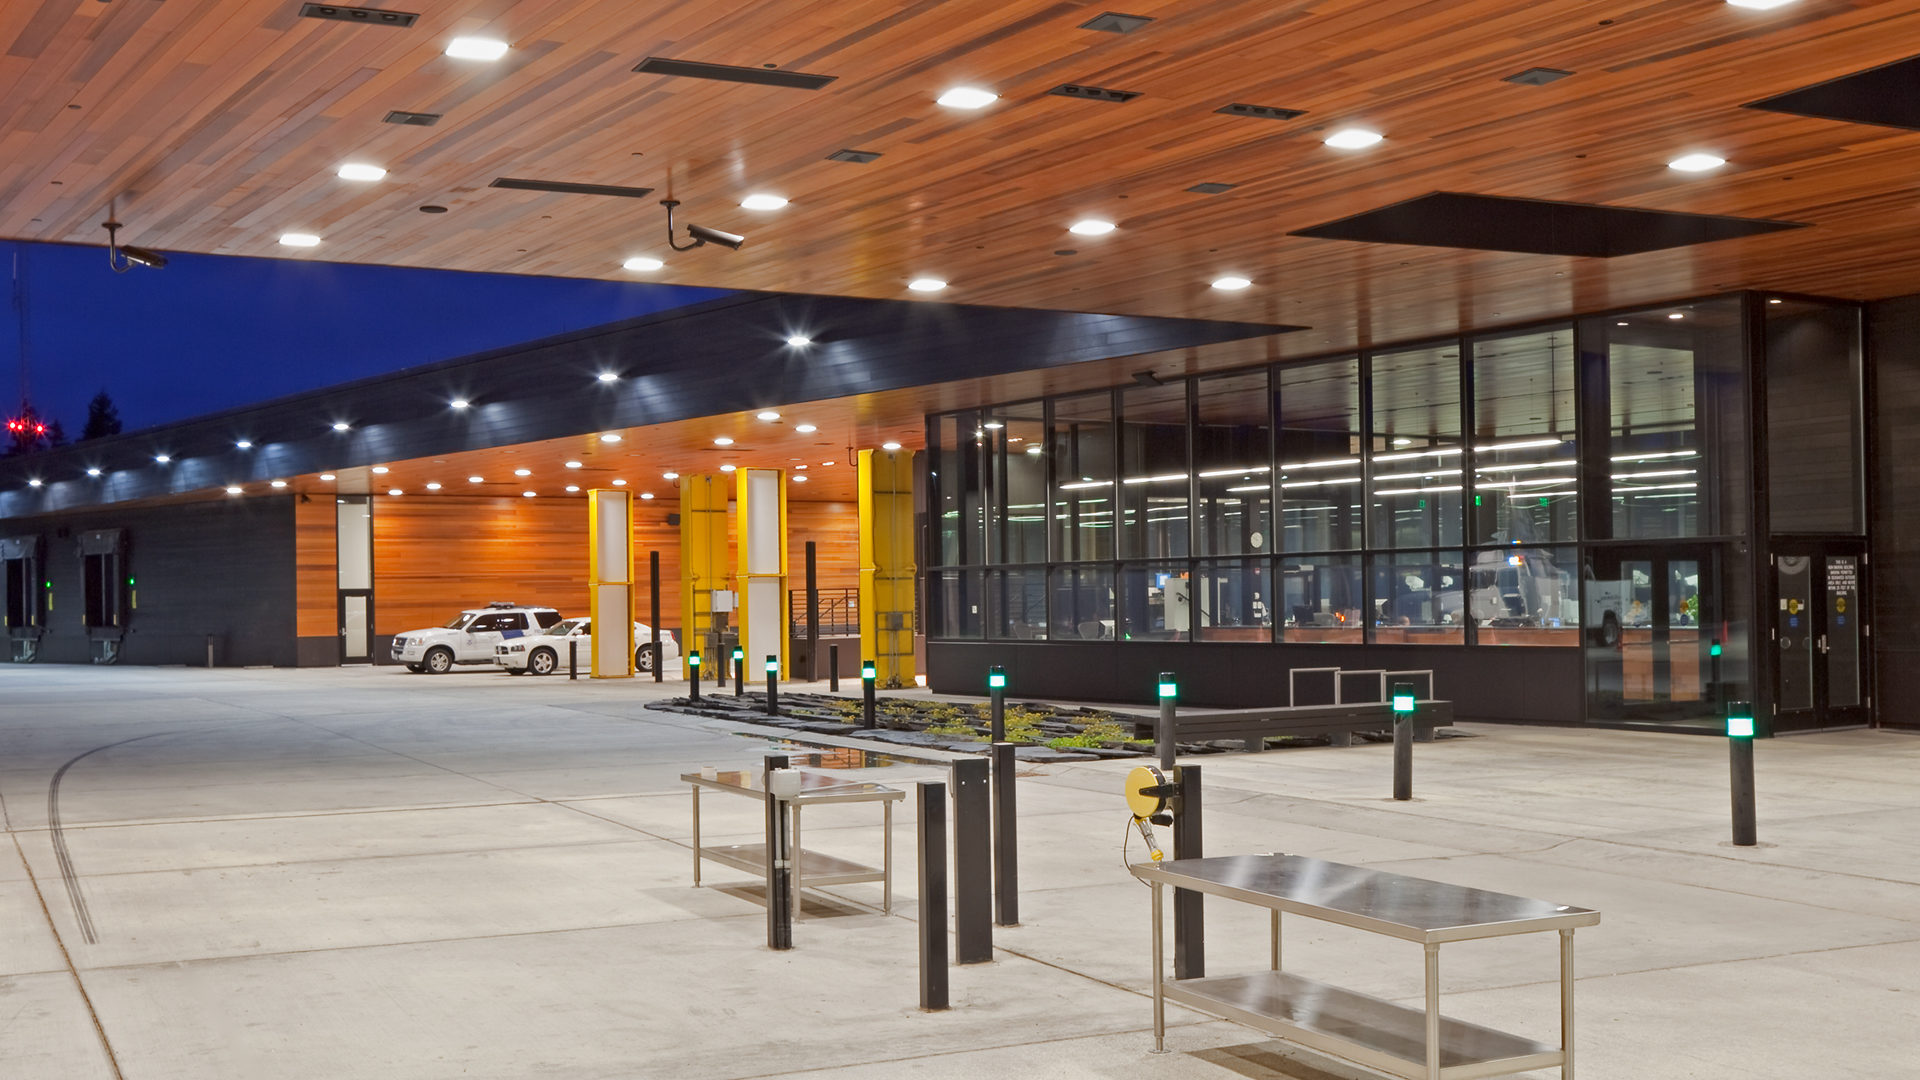 US Land Port of Entry Warroard MN Government Exterior Building View Vehicle Passage